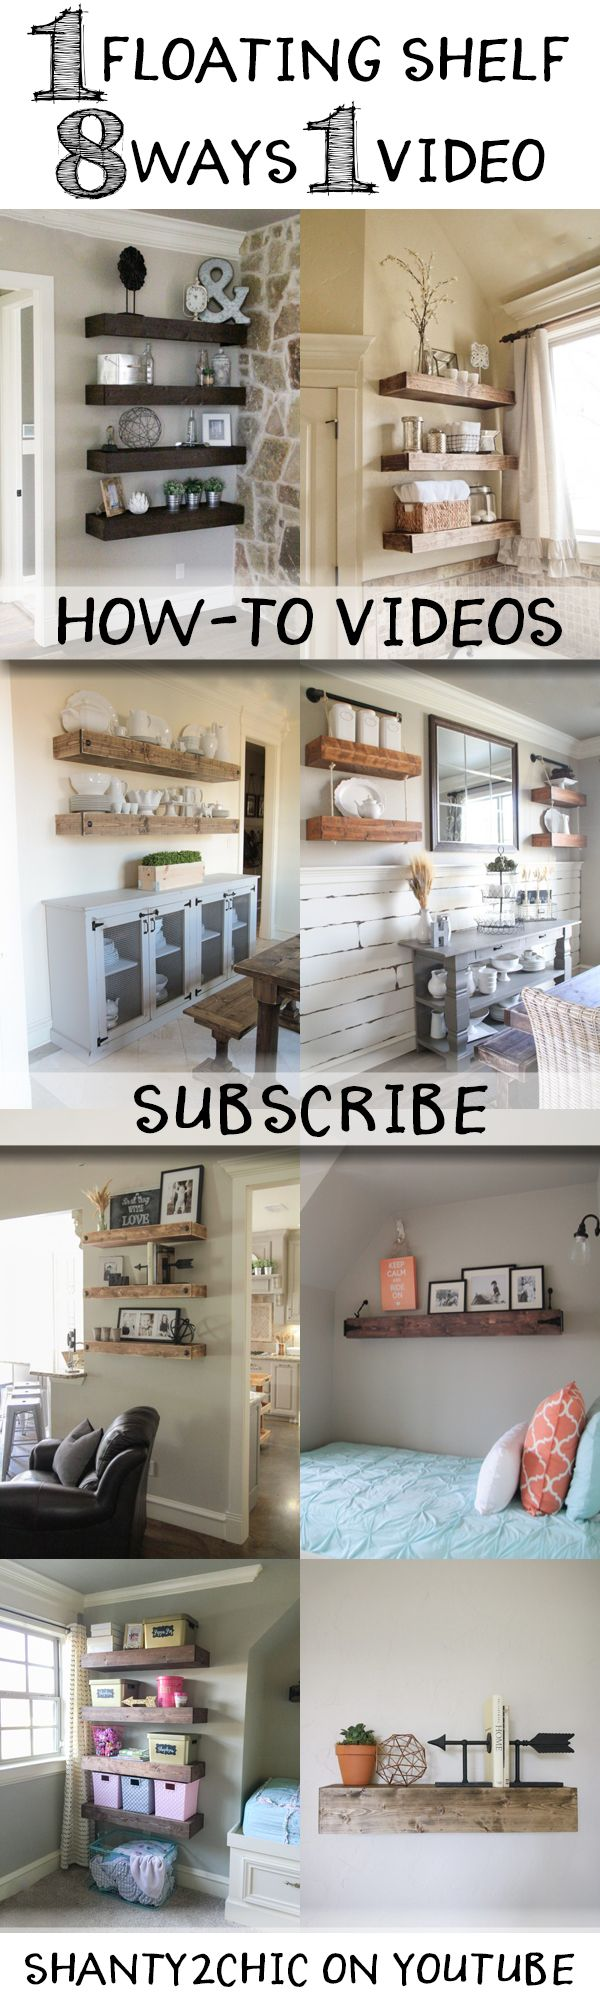 Learn how to build custom floating shelves with this how-to video! One floating shelf done 8 different ways and it's easier than you think! Make sure to subscribe - new videos coming weekly!